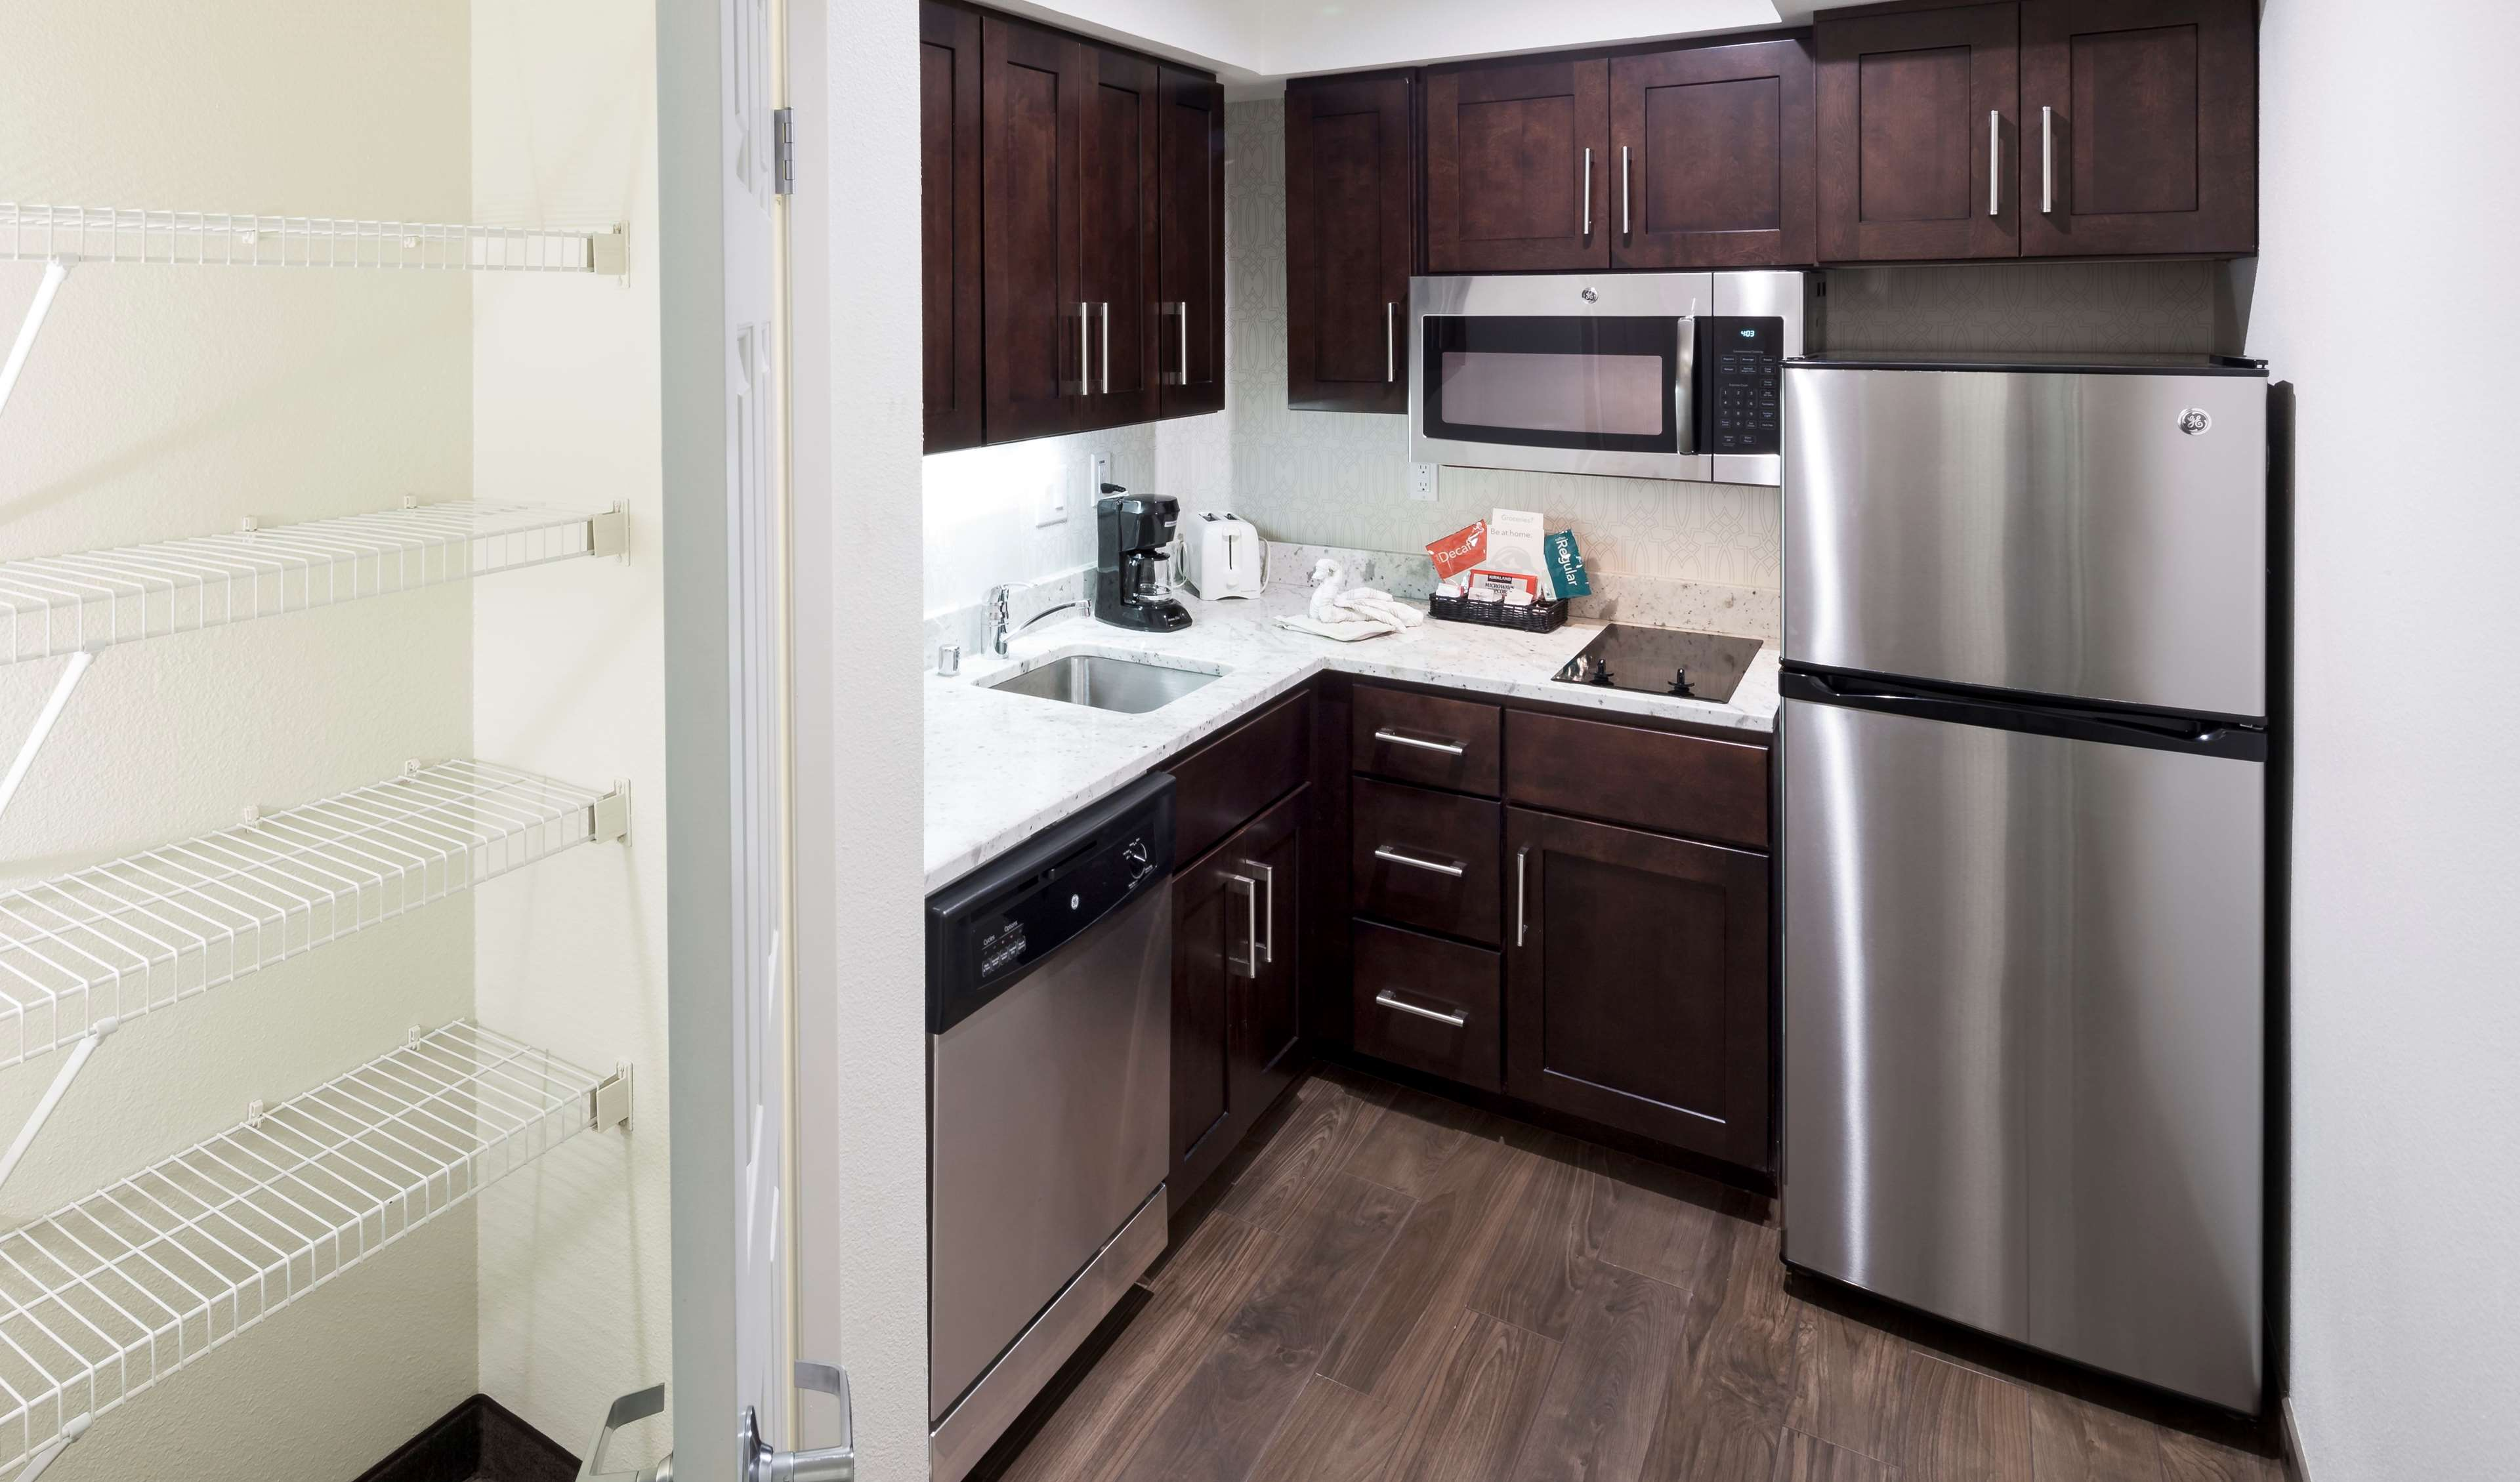 Homewood Suites by Hilton San Jose Airport-Silicon Valley image 23